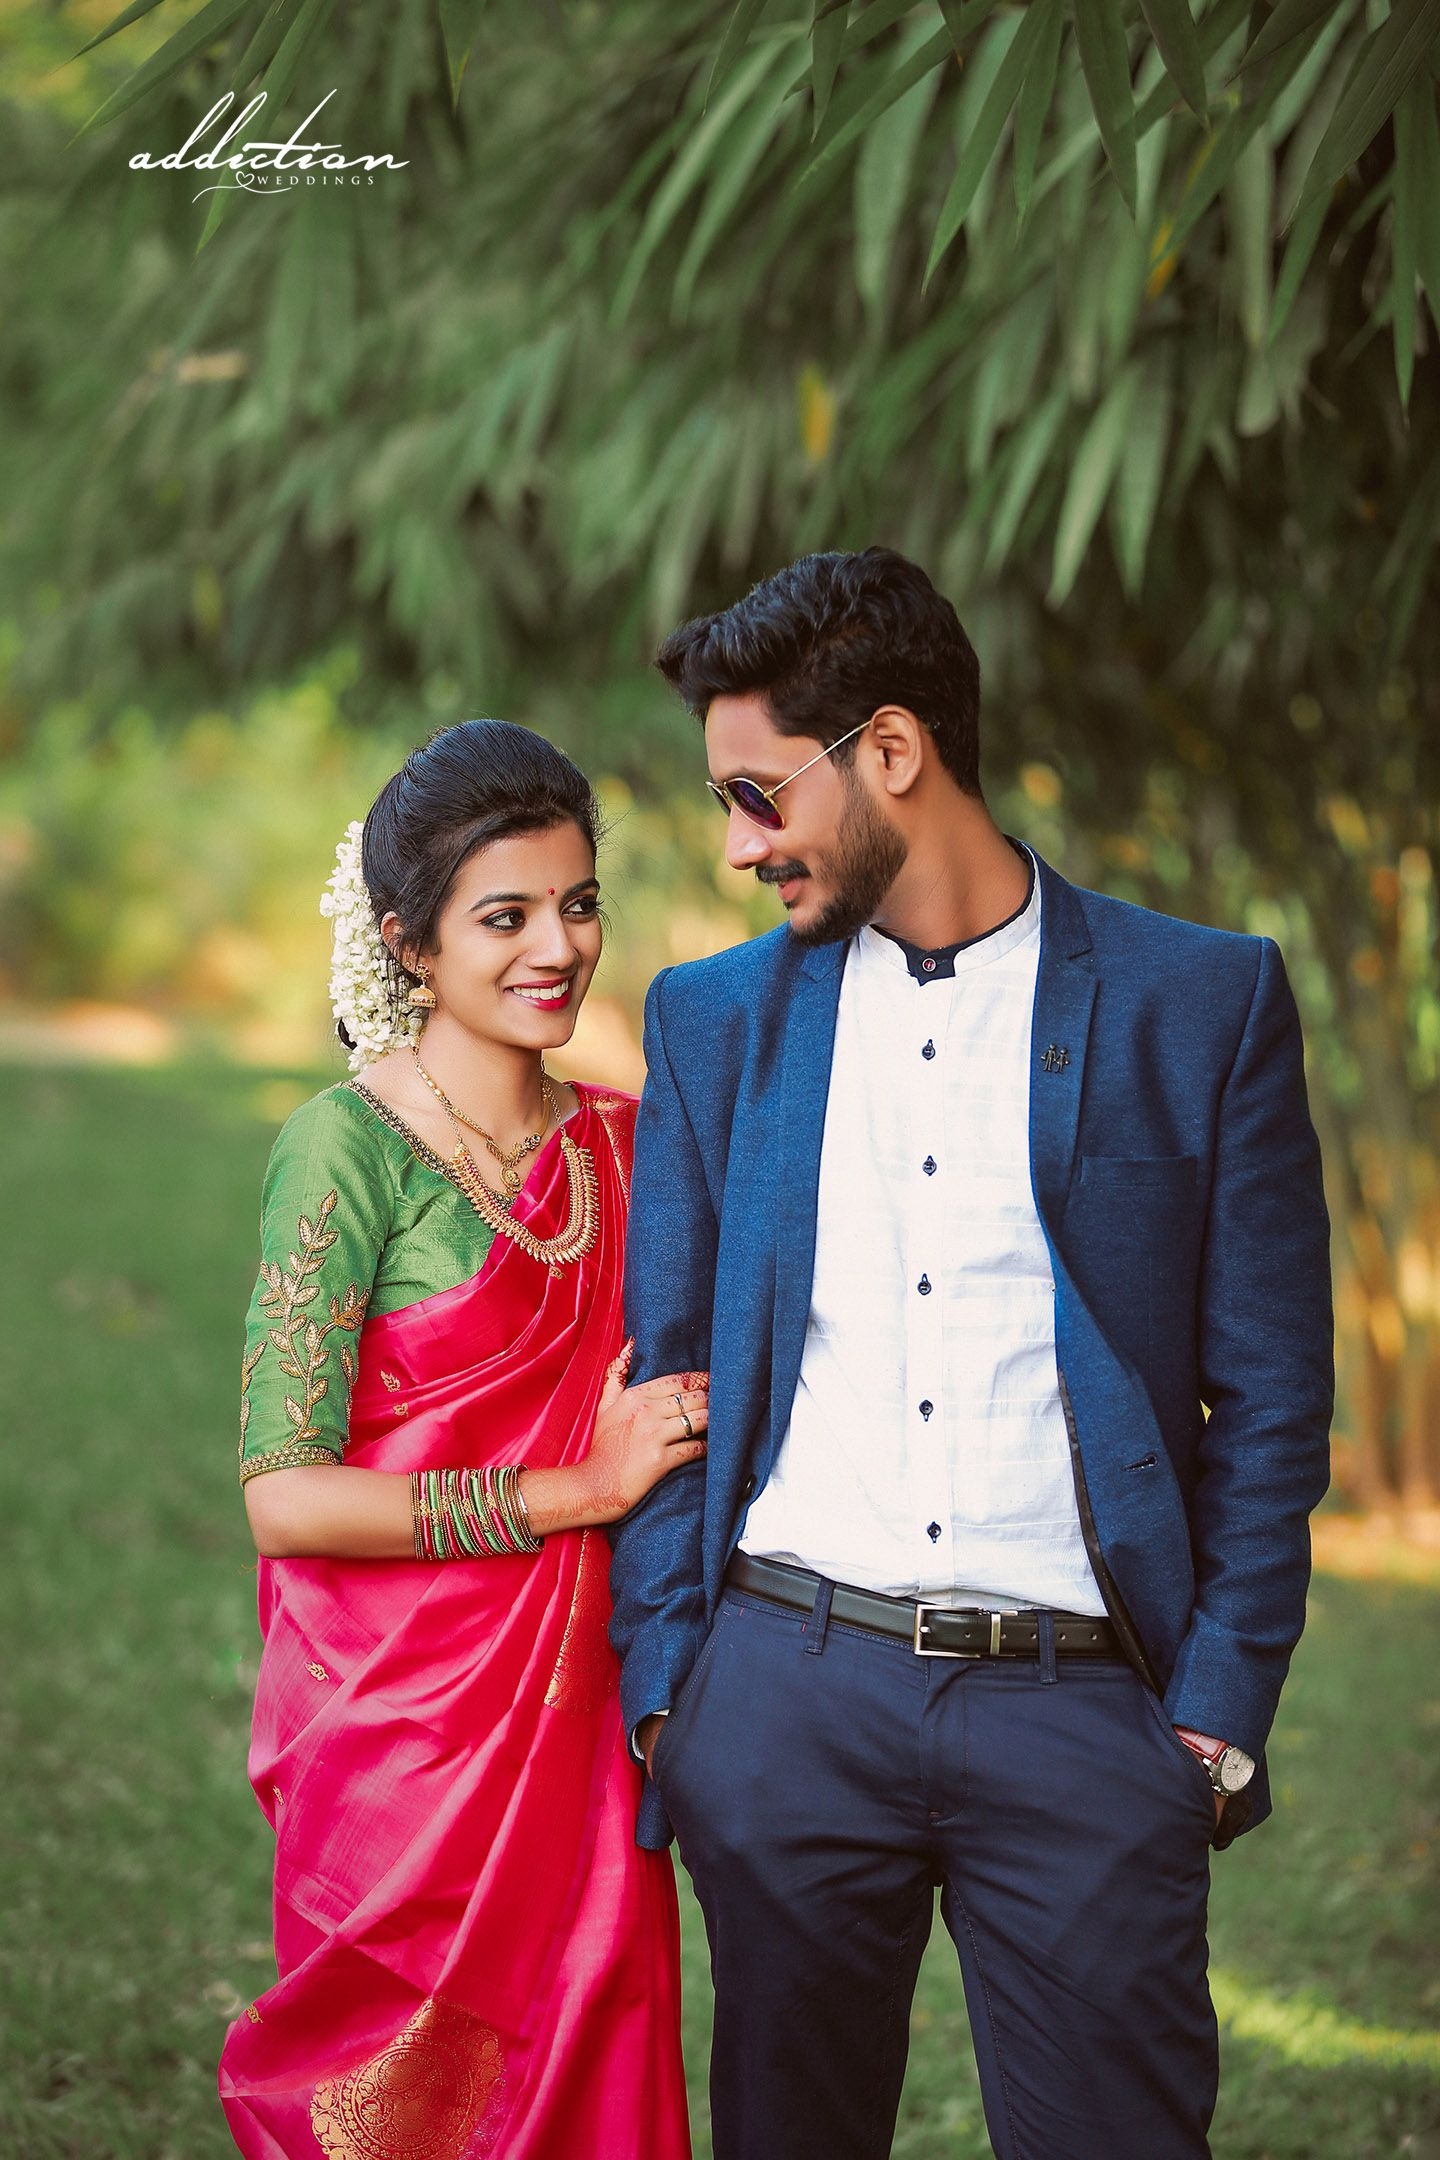 South Indian Wedding Cute Smile Indian Wedding Photography Indian Wedding Photography Poses Kerala Wedding Photography